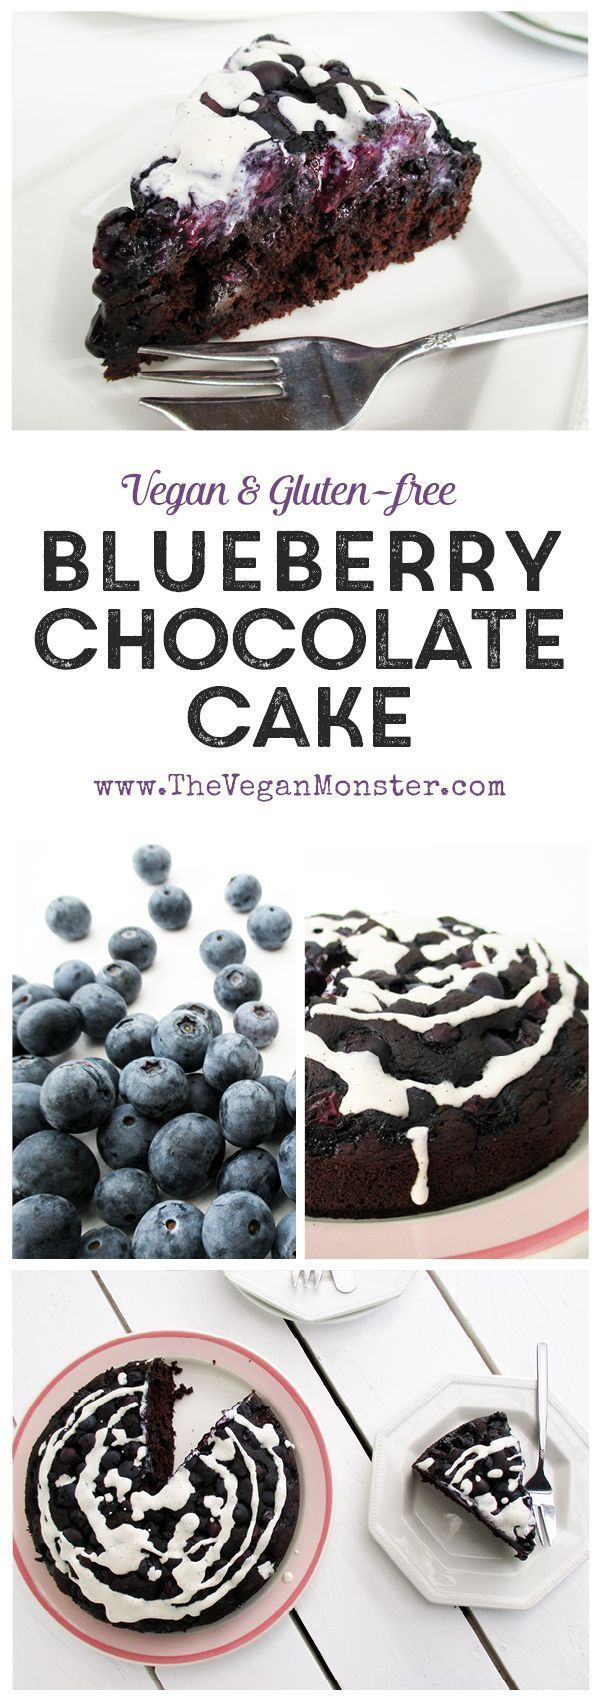 Blueberry Chocolate Cake (Vegan, Gluten-free, Without Refined Sugar, Low-Fat)